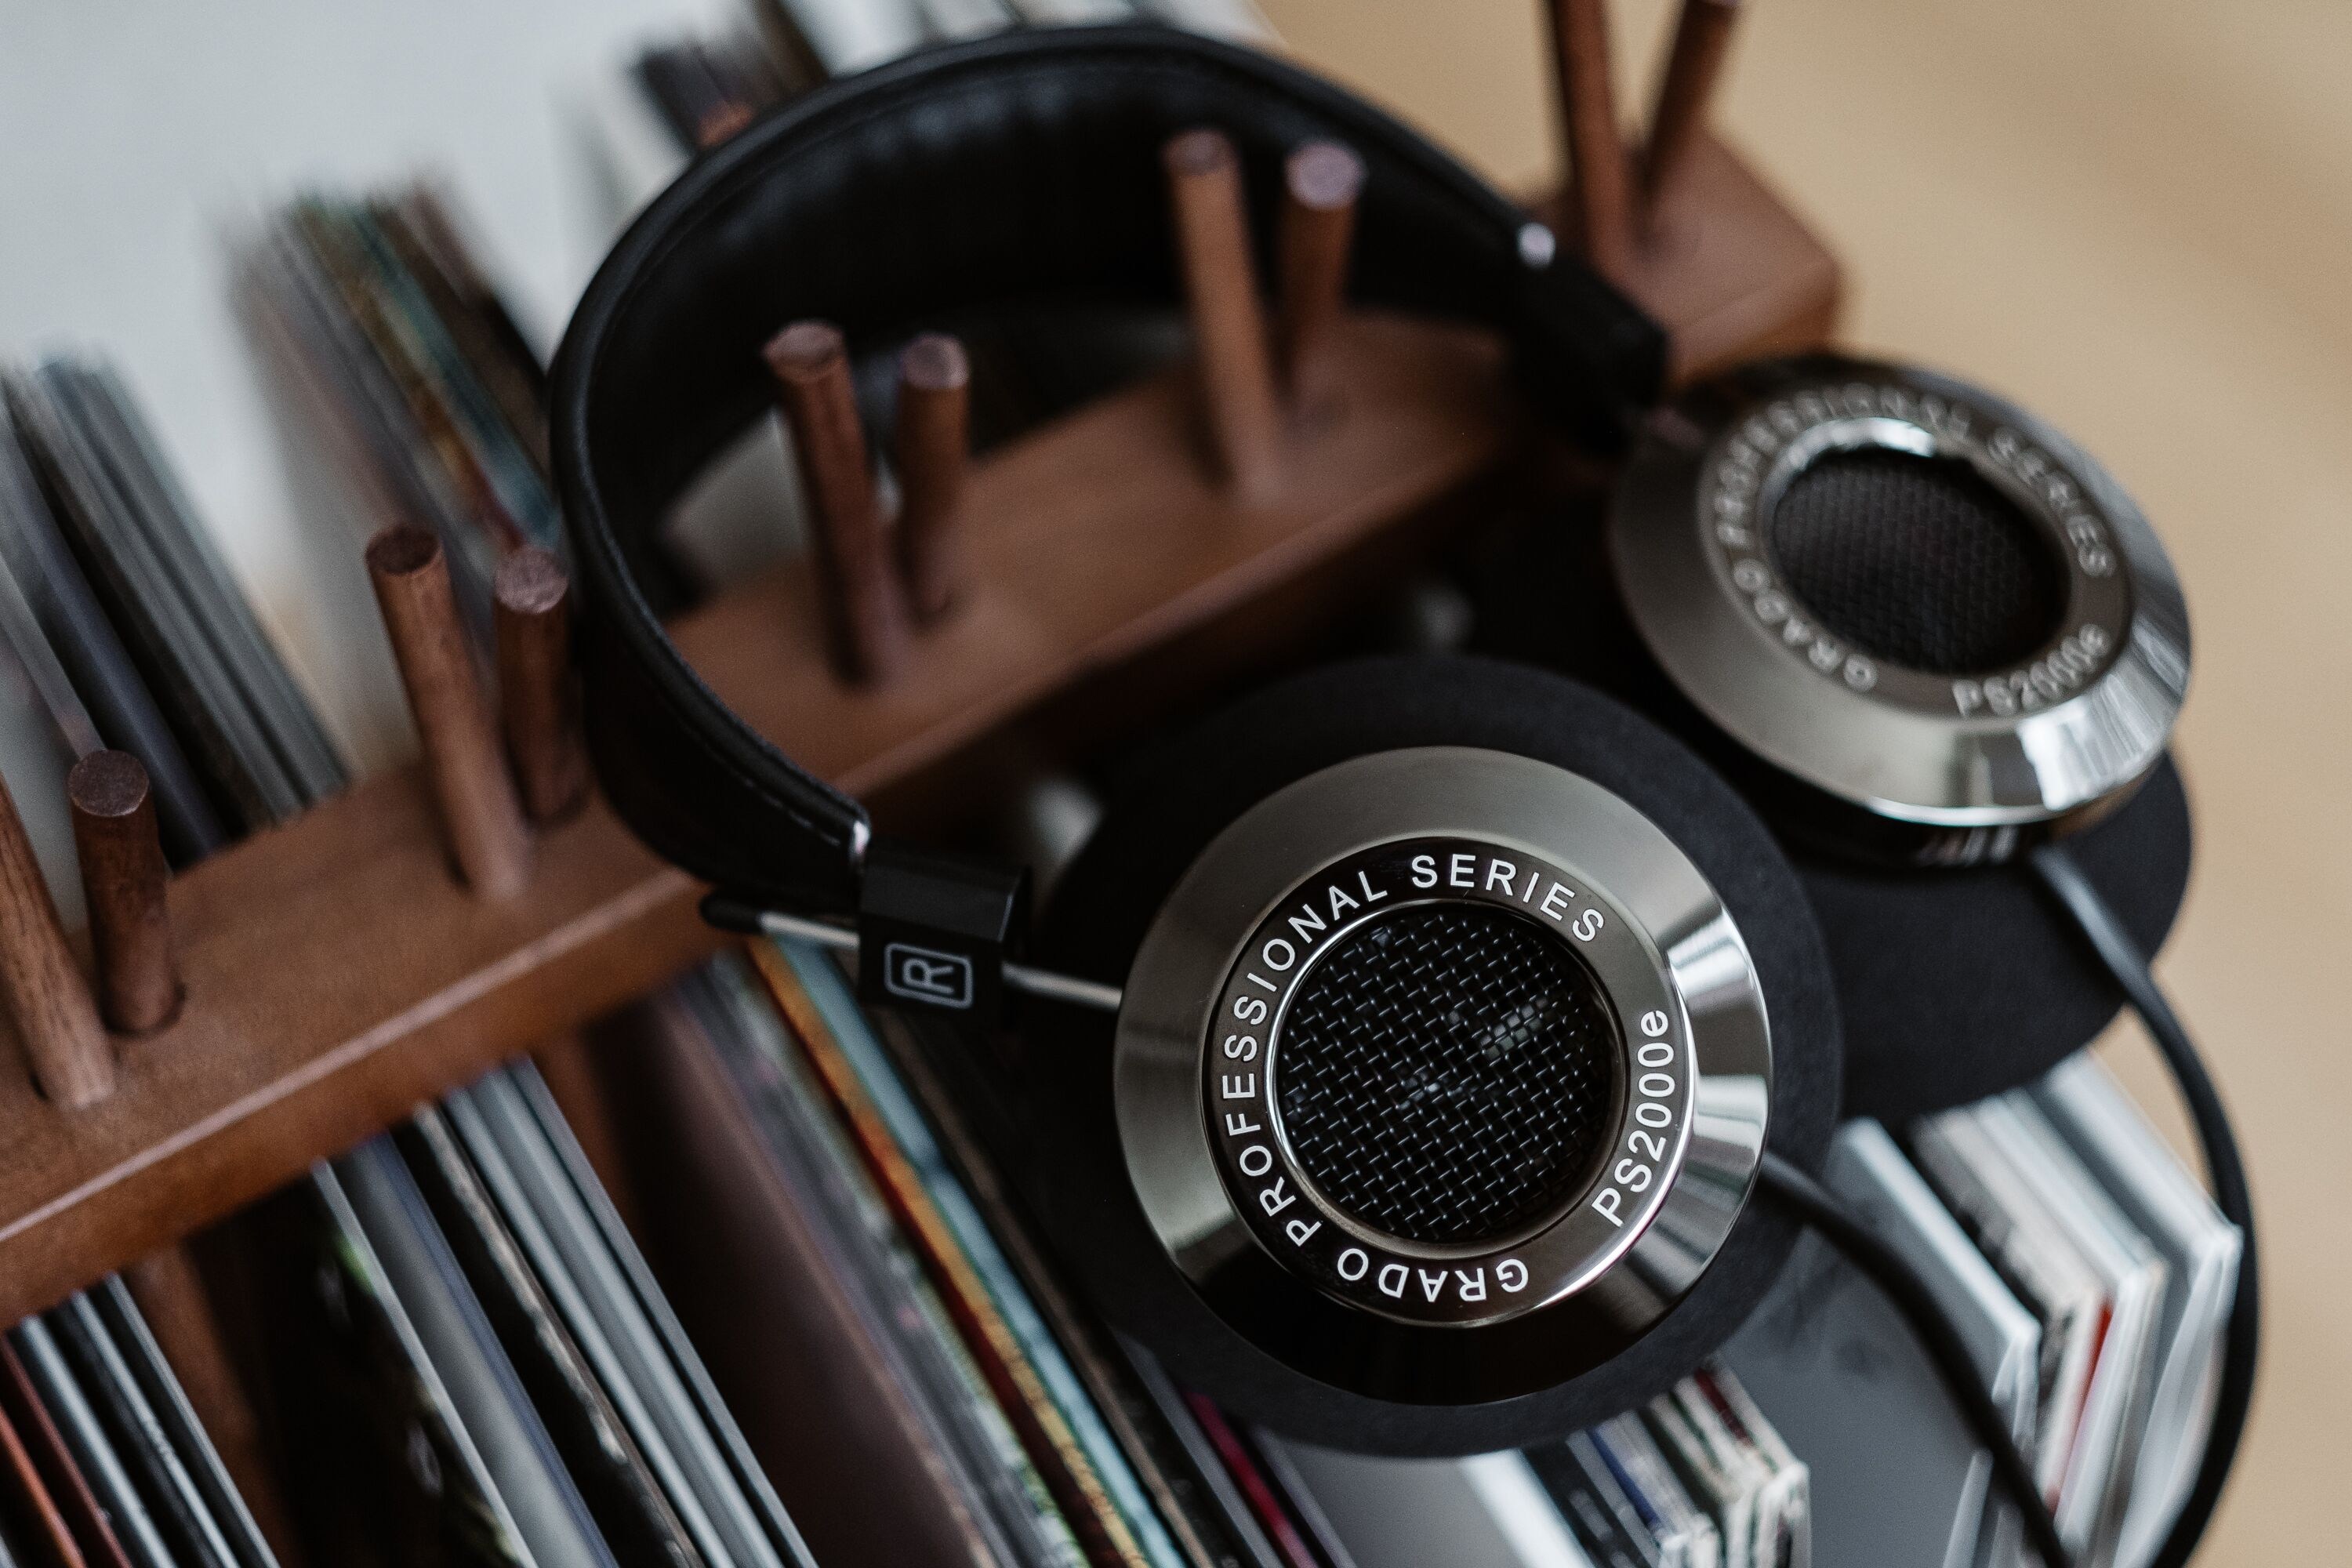 Grado-PS2000e-Headphones-with-Vinyl-Records-7